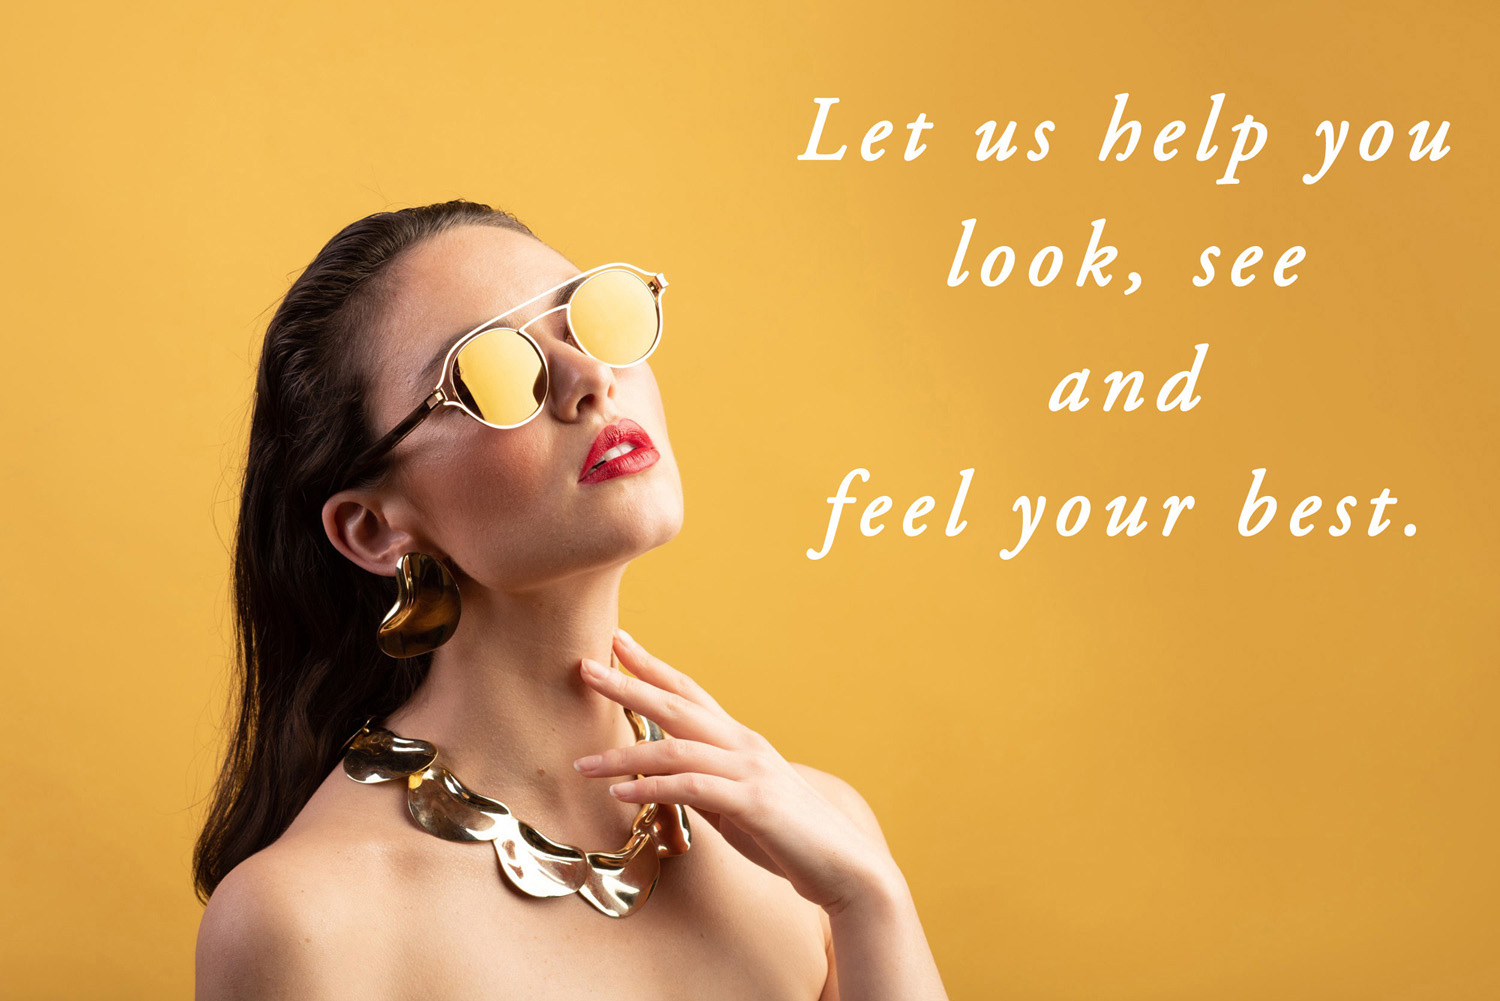 Products - Look, See and Feel your best. Make a fashion statement by adding style and elegance to your ensemble with our exclusive selection of luxury hand crafted eye glasses.